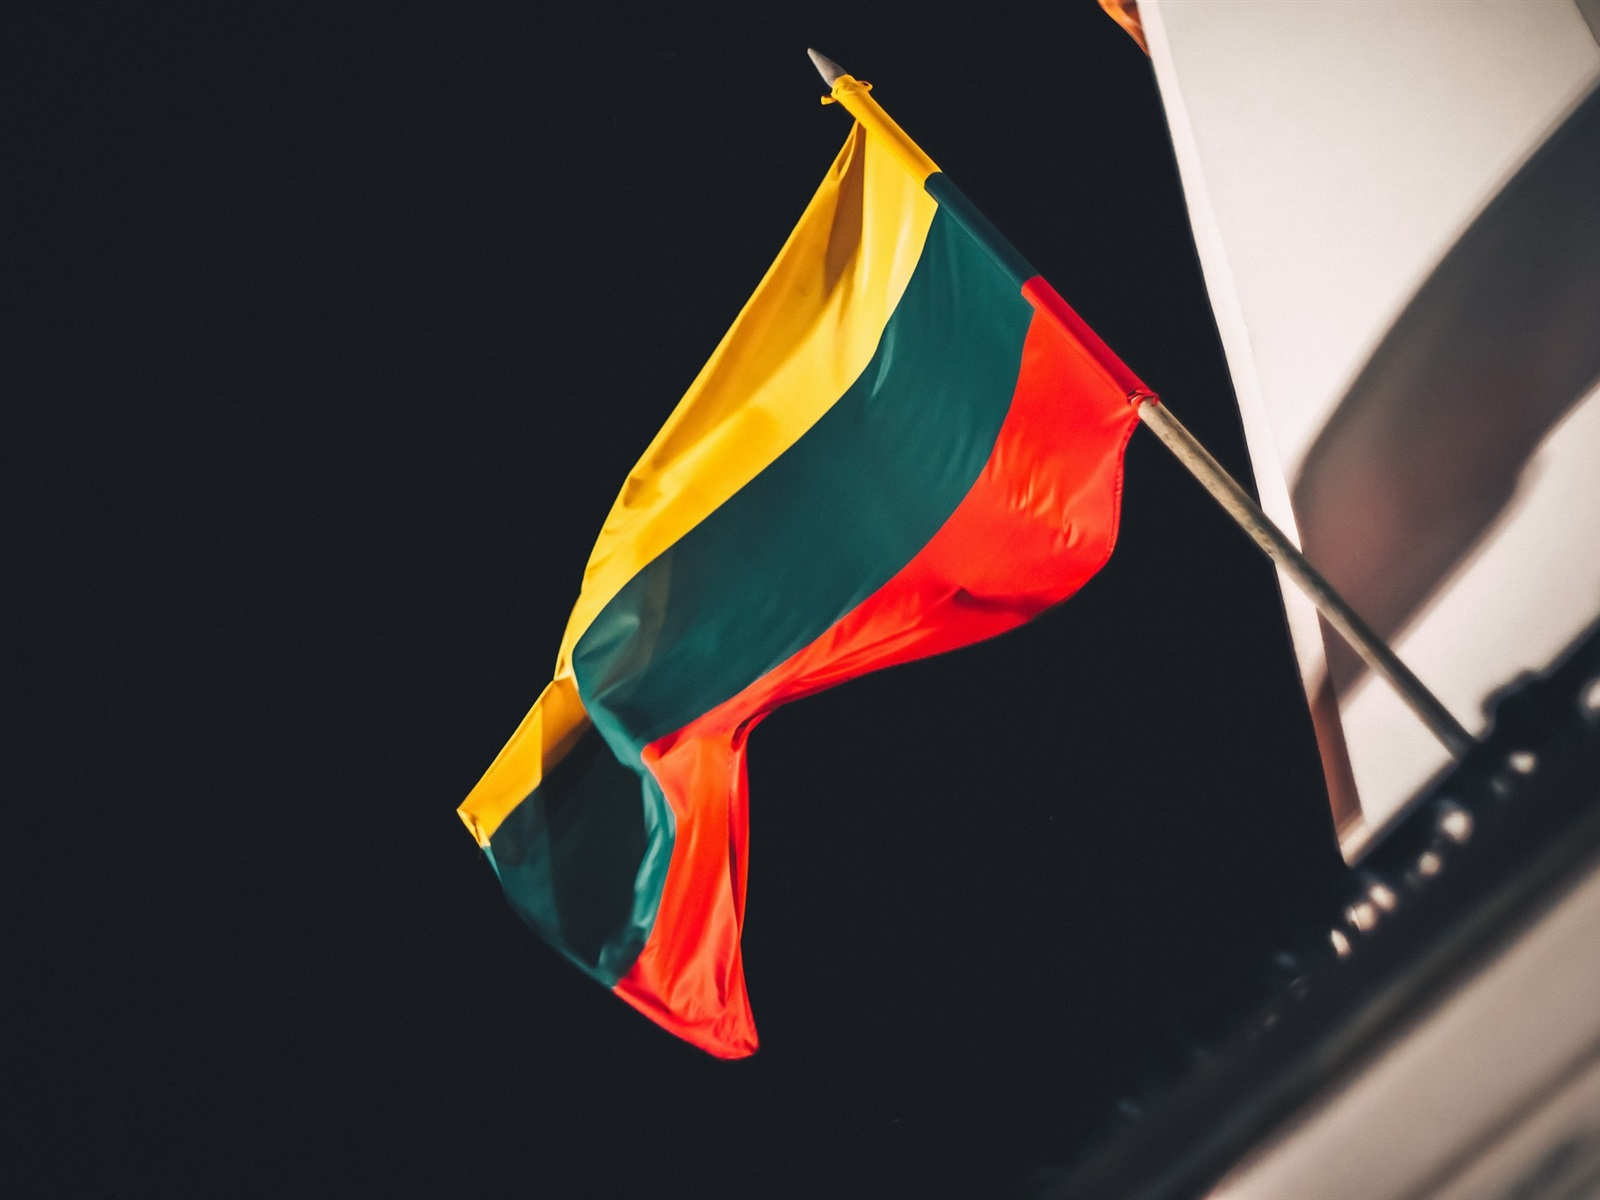 Wallpaper Lithuania Flag Night 1920x1200 Hd Picture Image